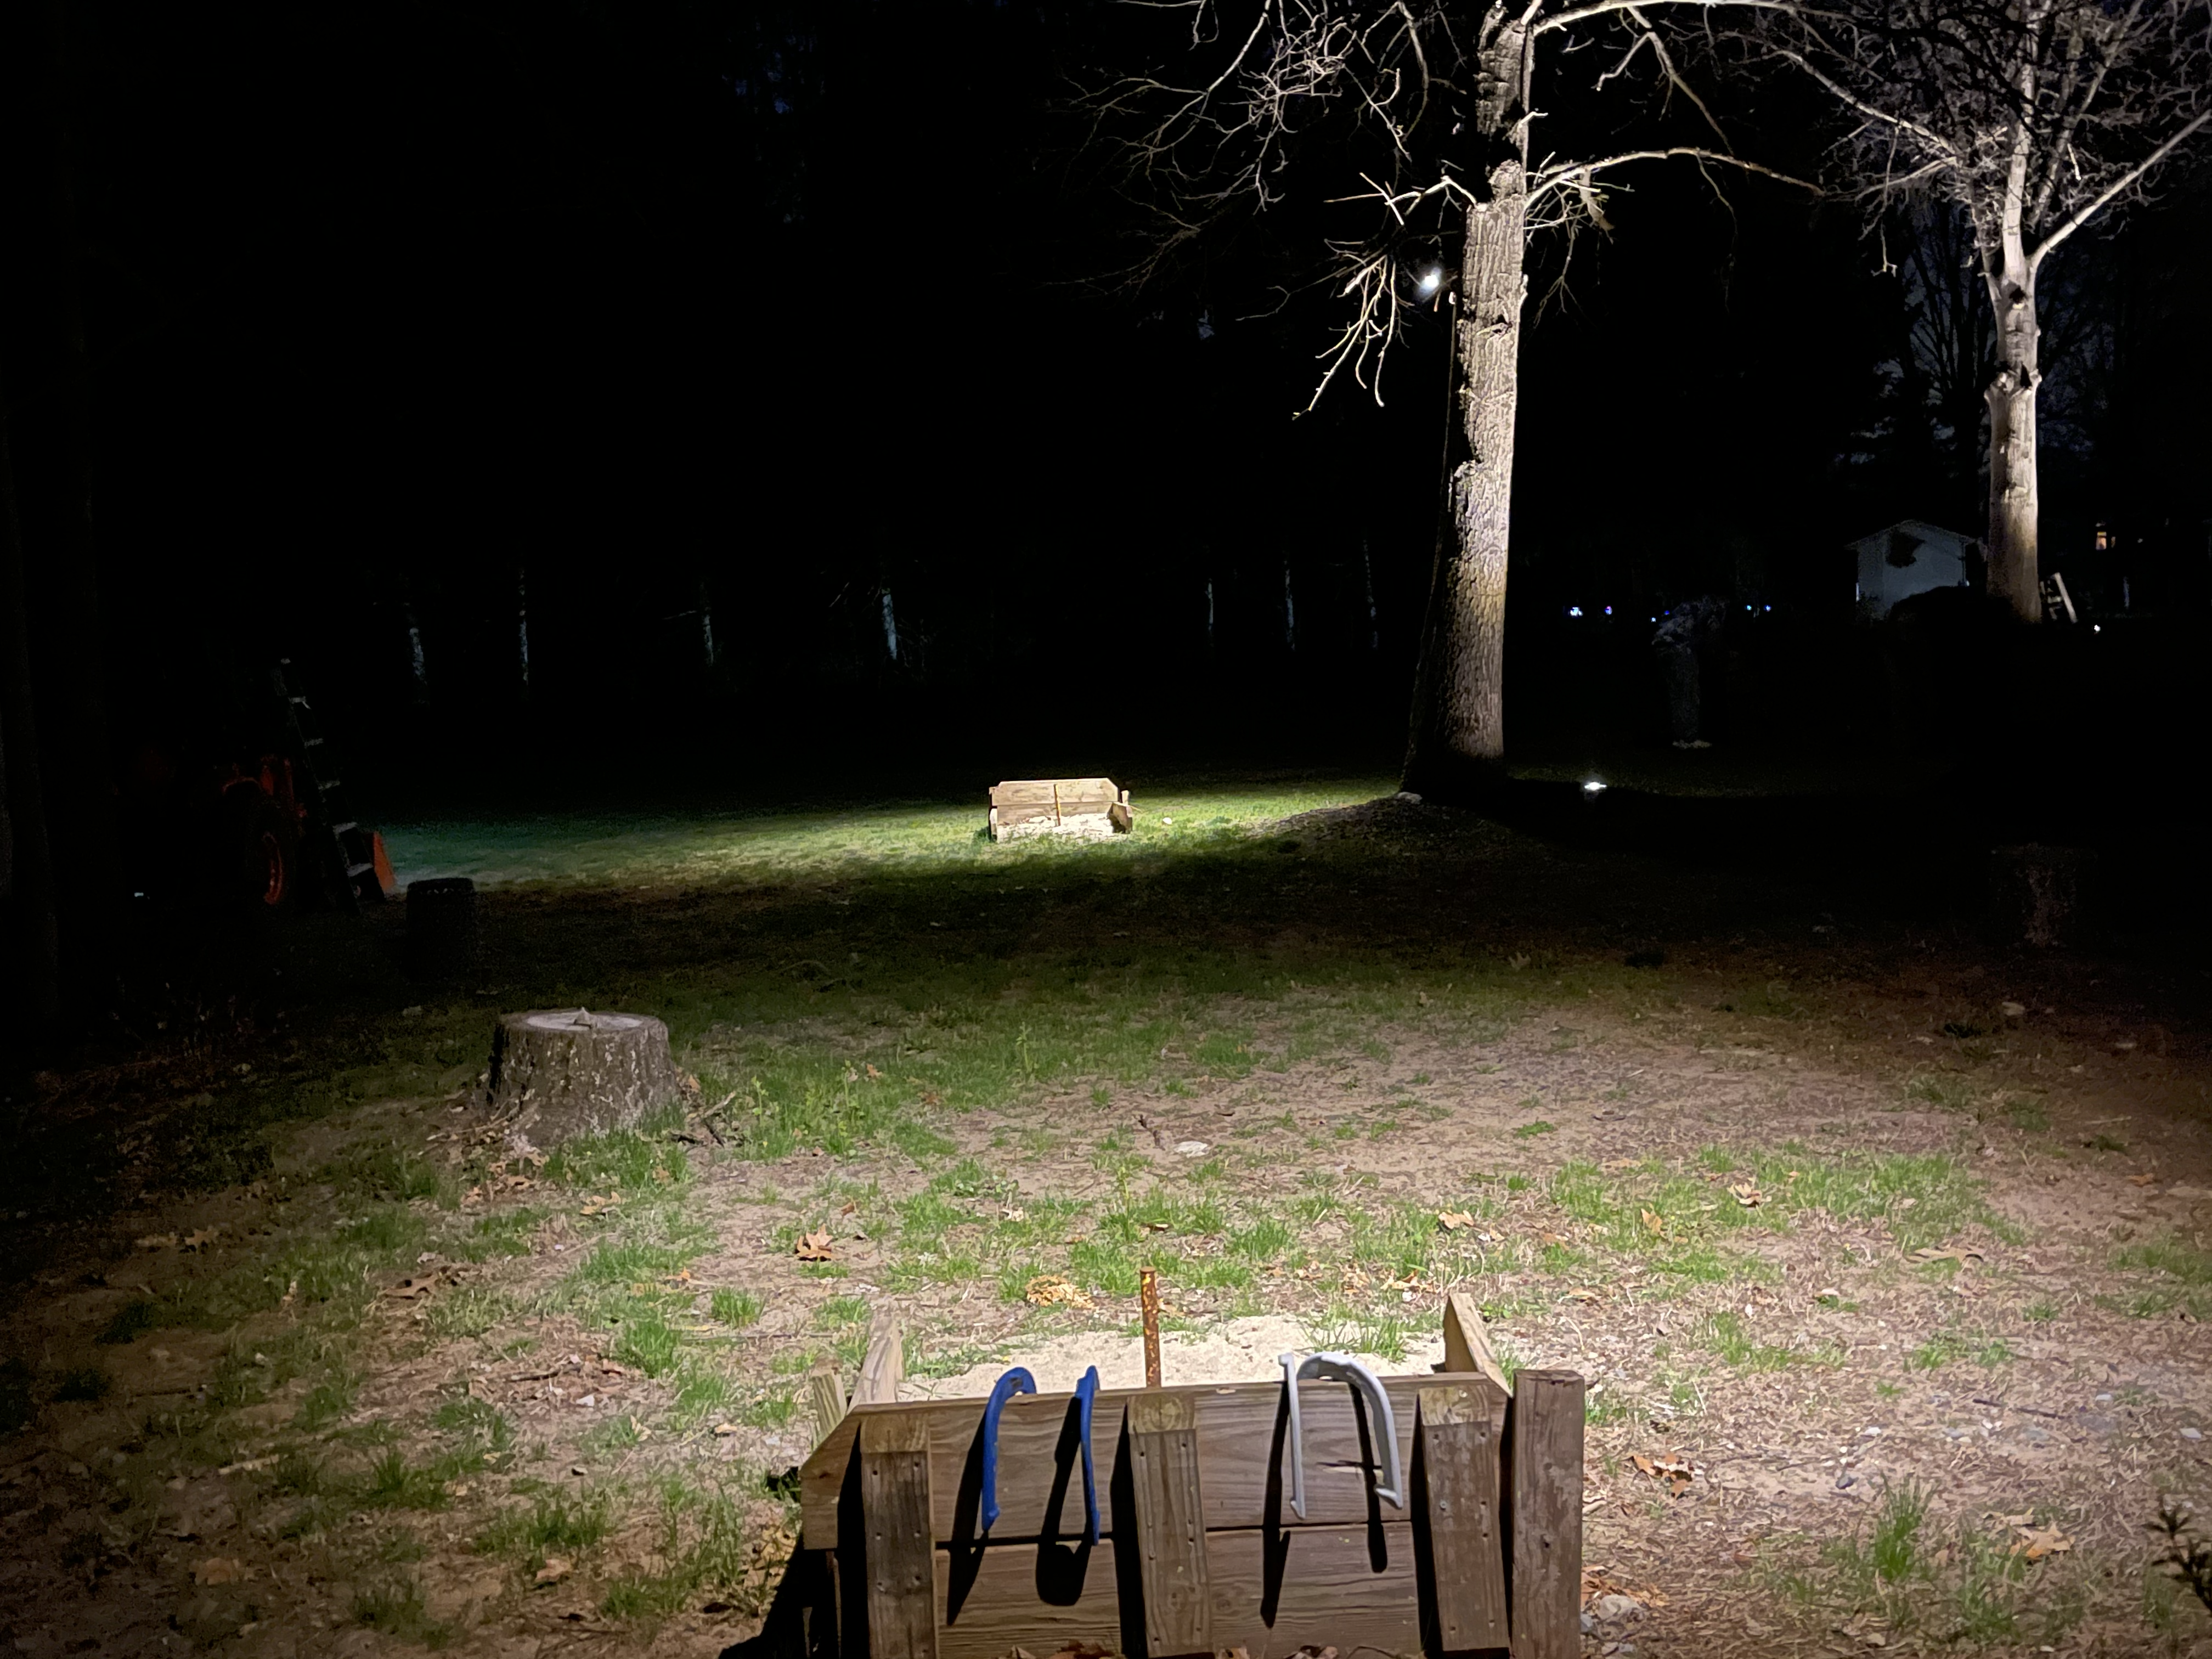 how to light up a horseshoe pit so you can play at night picture